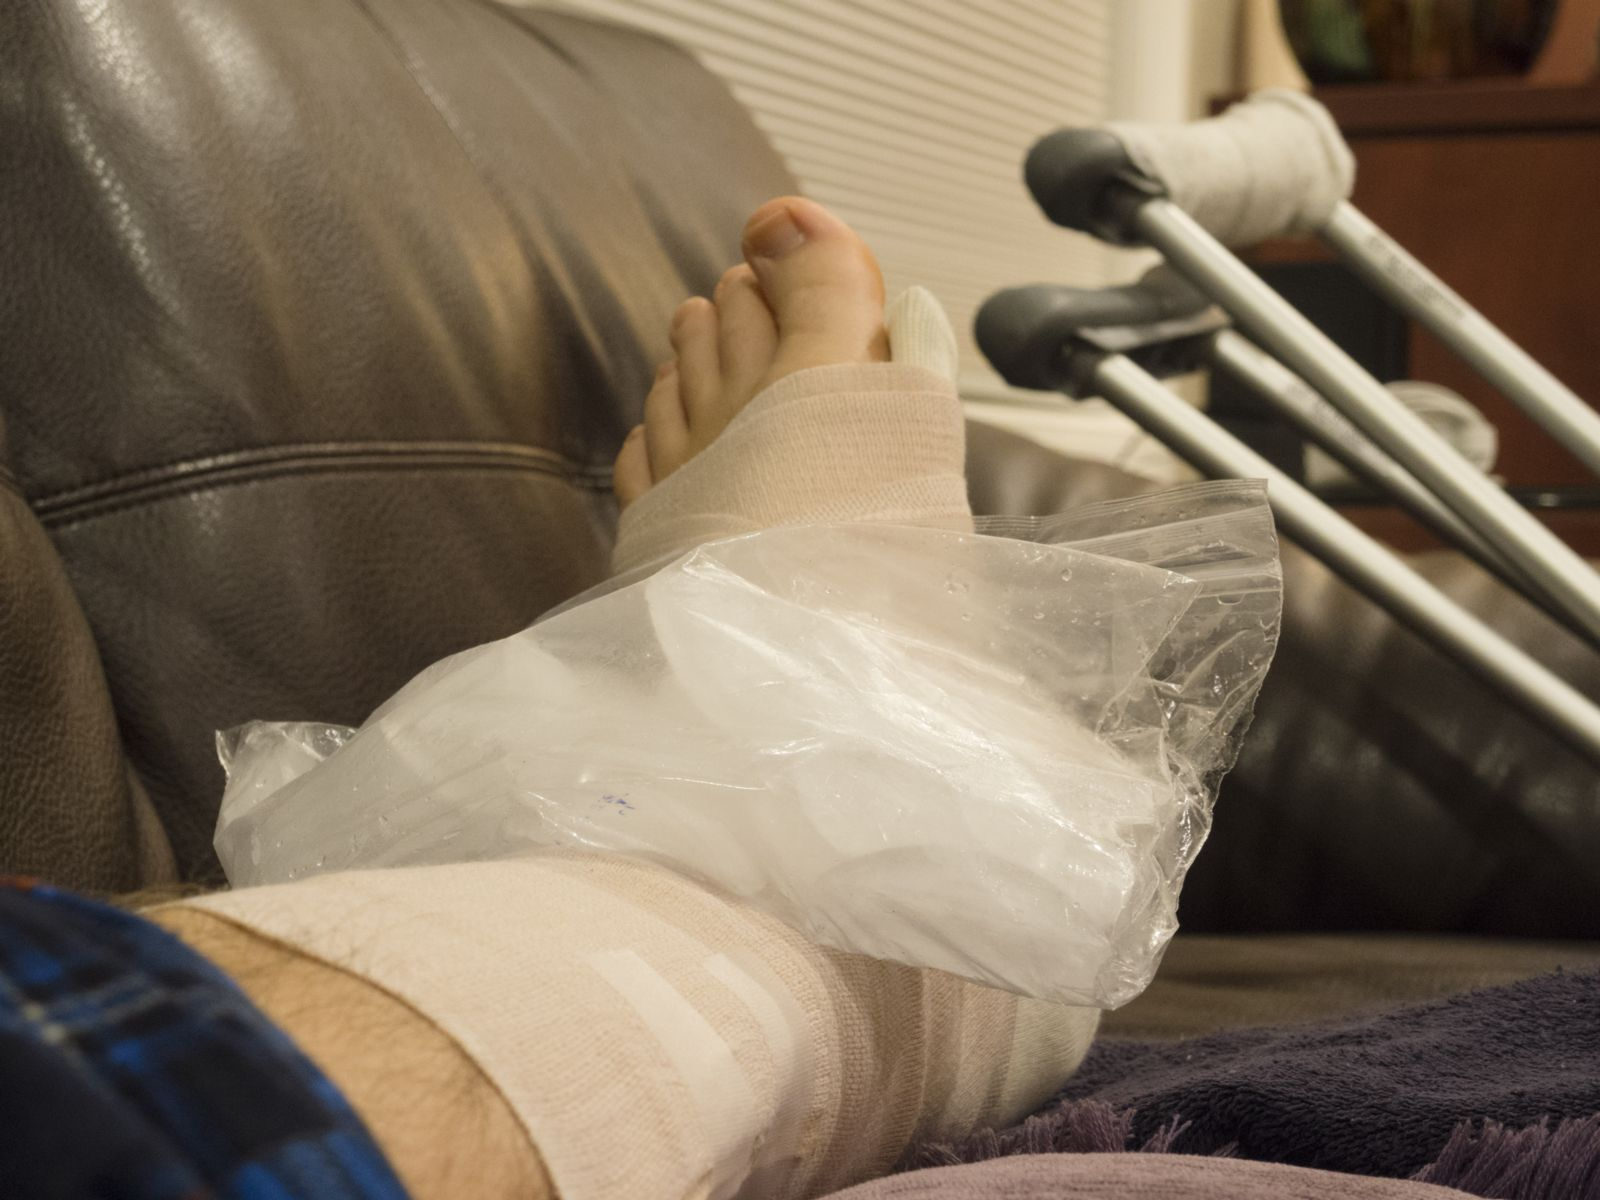 Picture of foot and leg in splint with ice and crutches